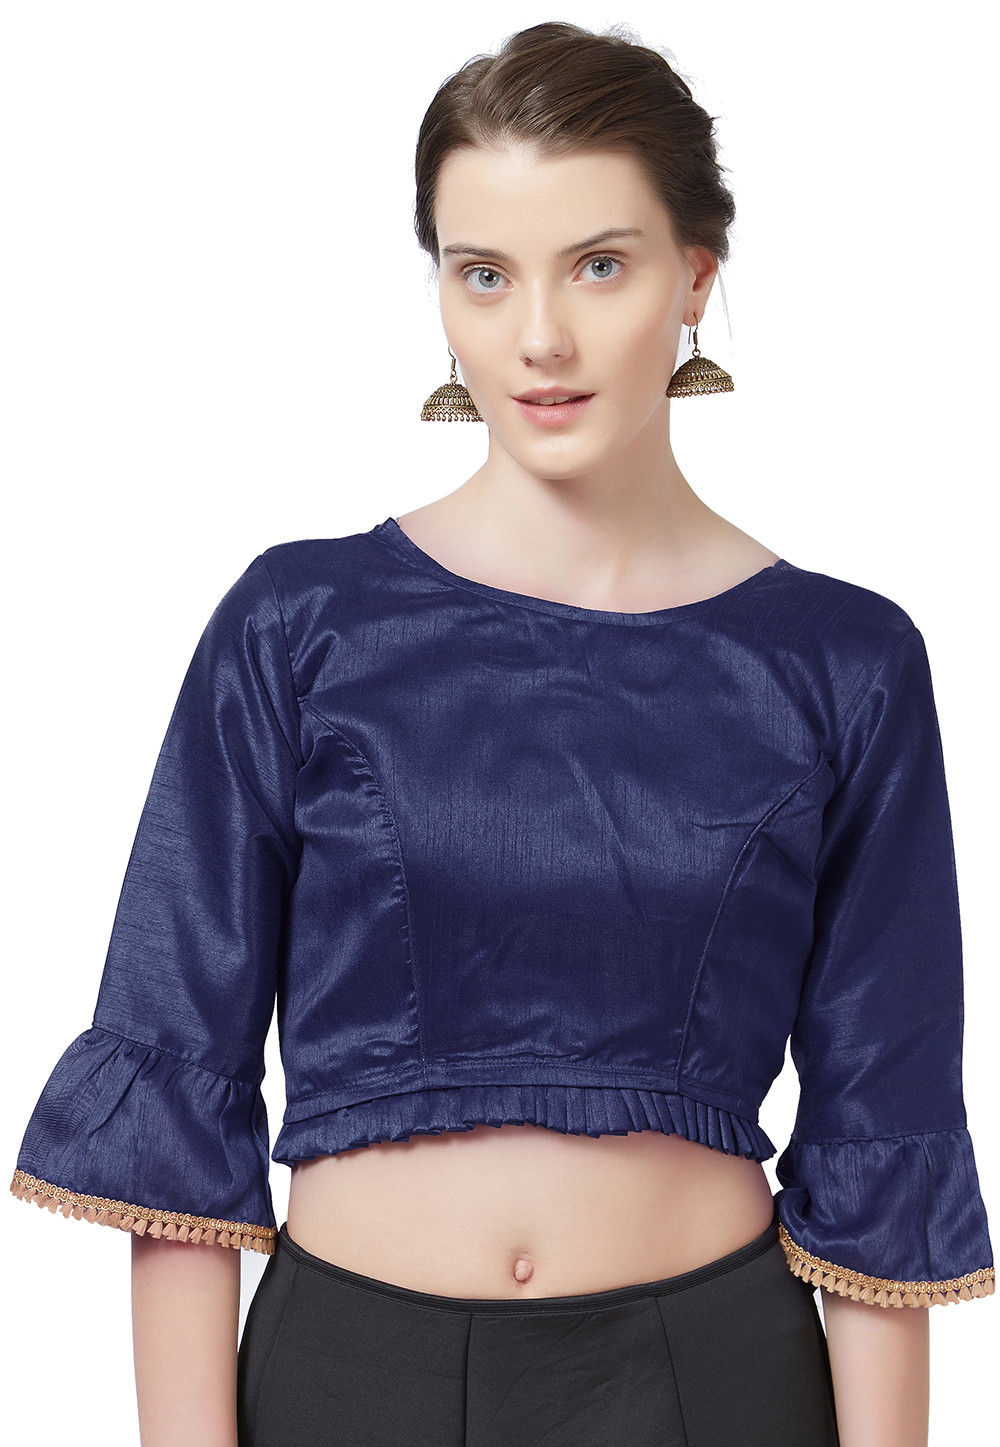 a8c9fdb7b48 Navy Silk Blouse - Image Of Blouse and Pocket